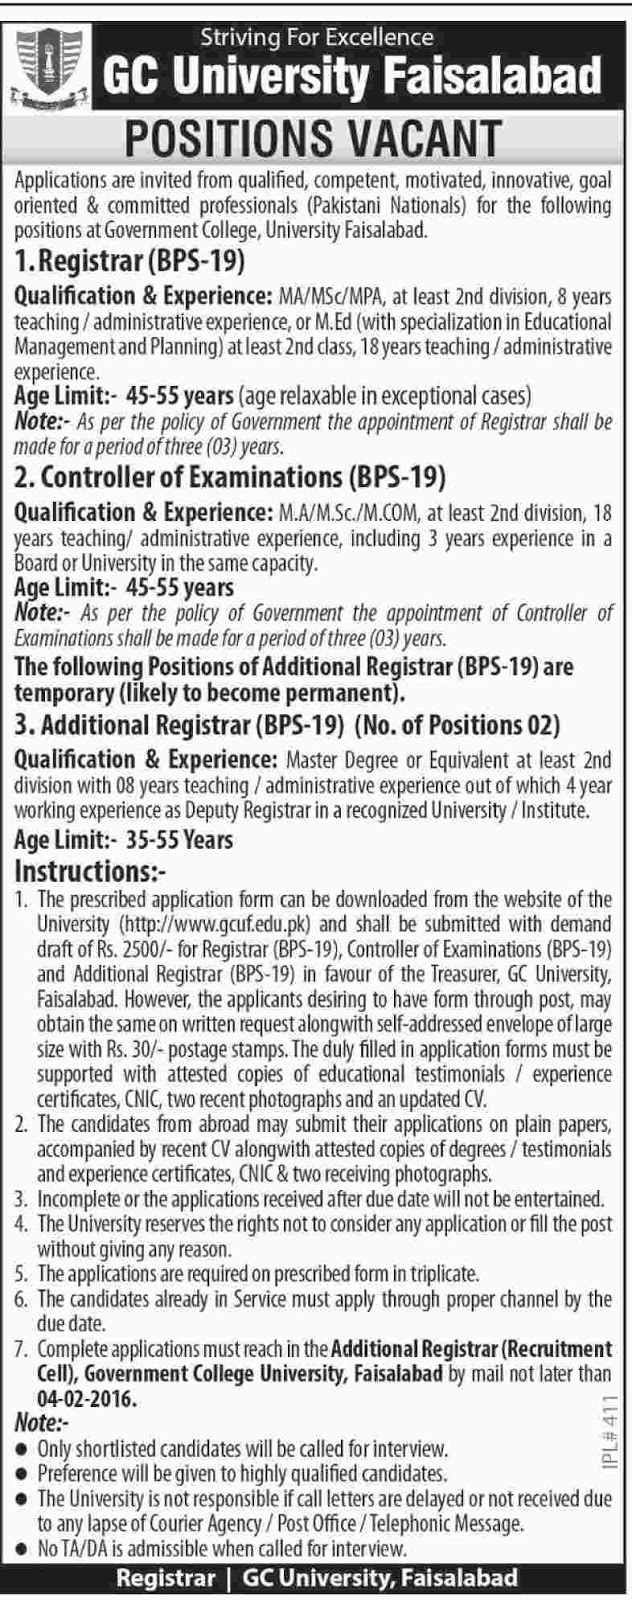 Admin Jobs in GC University Faisalabad